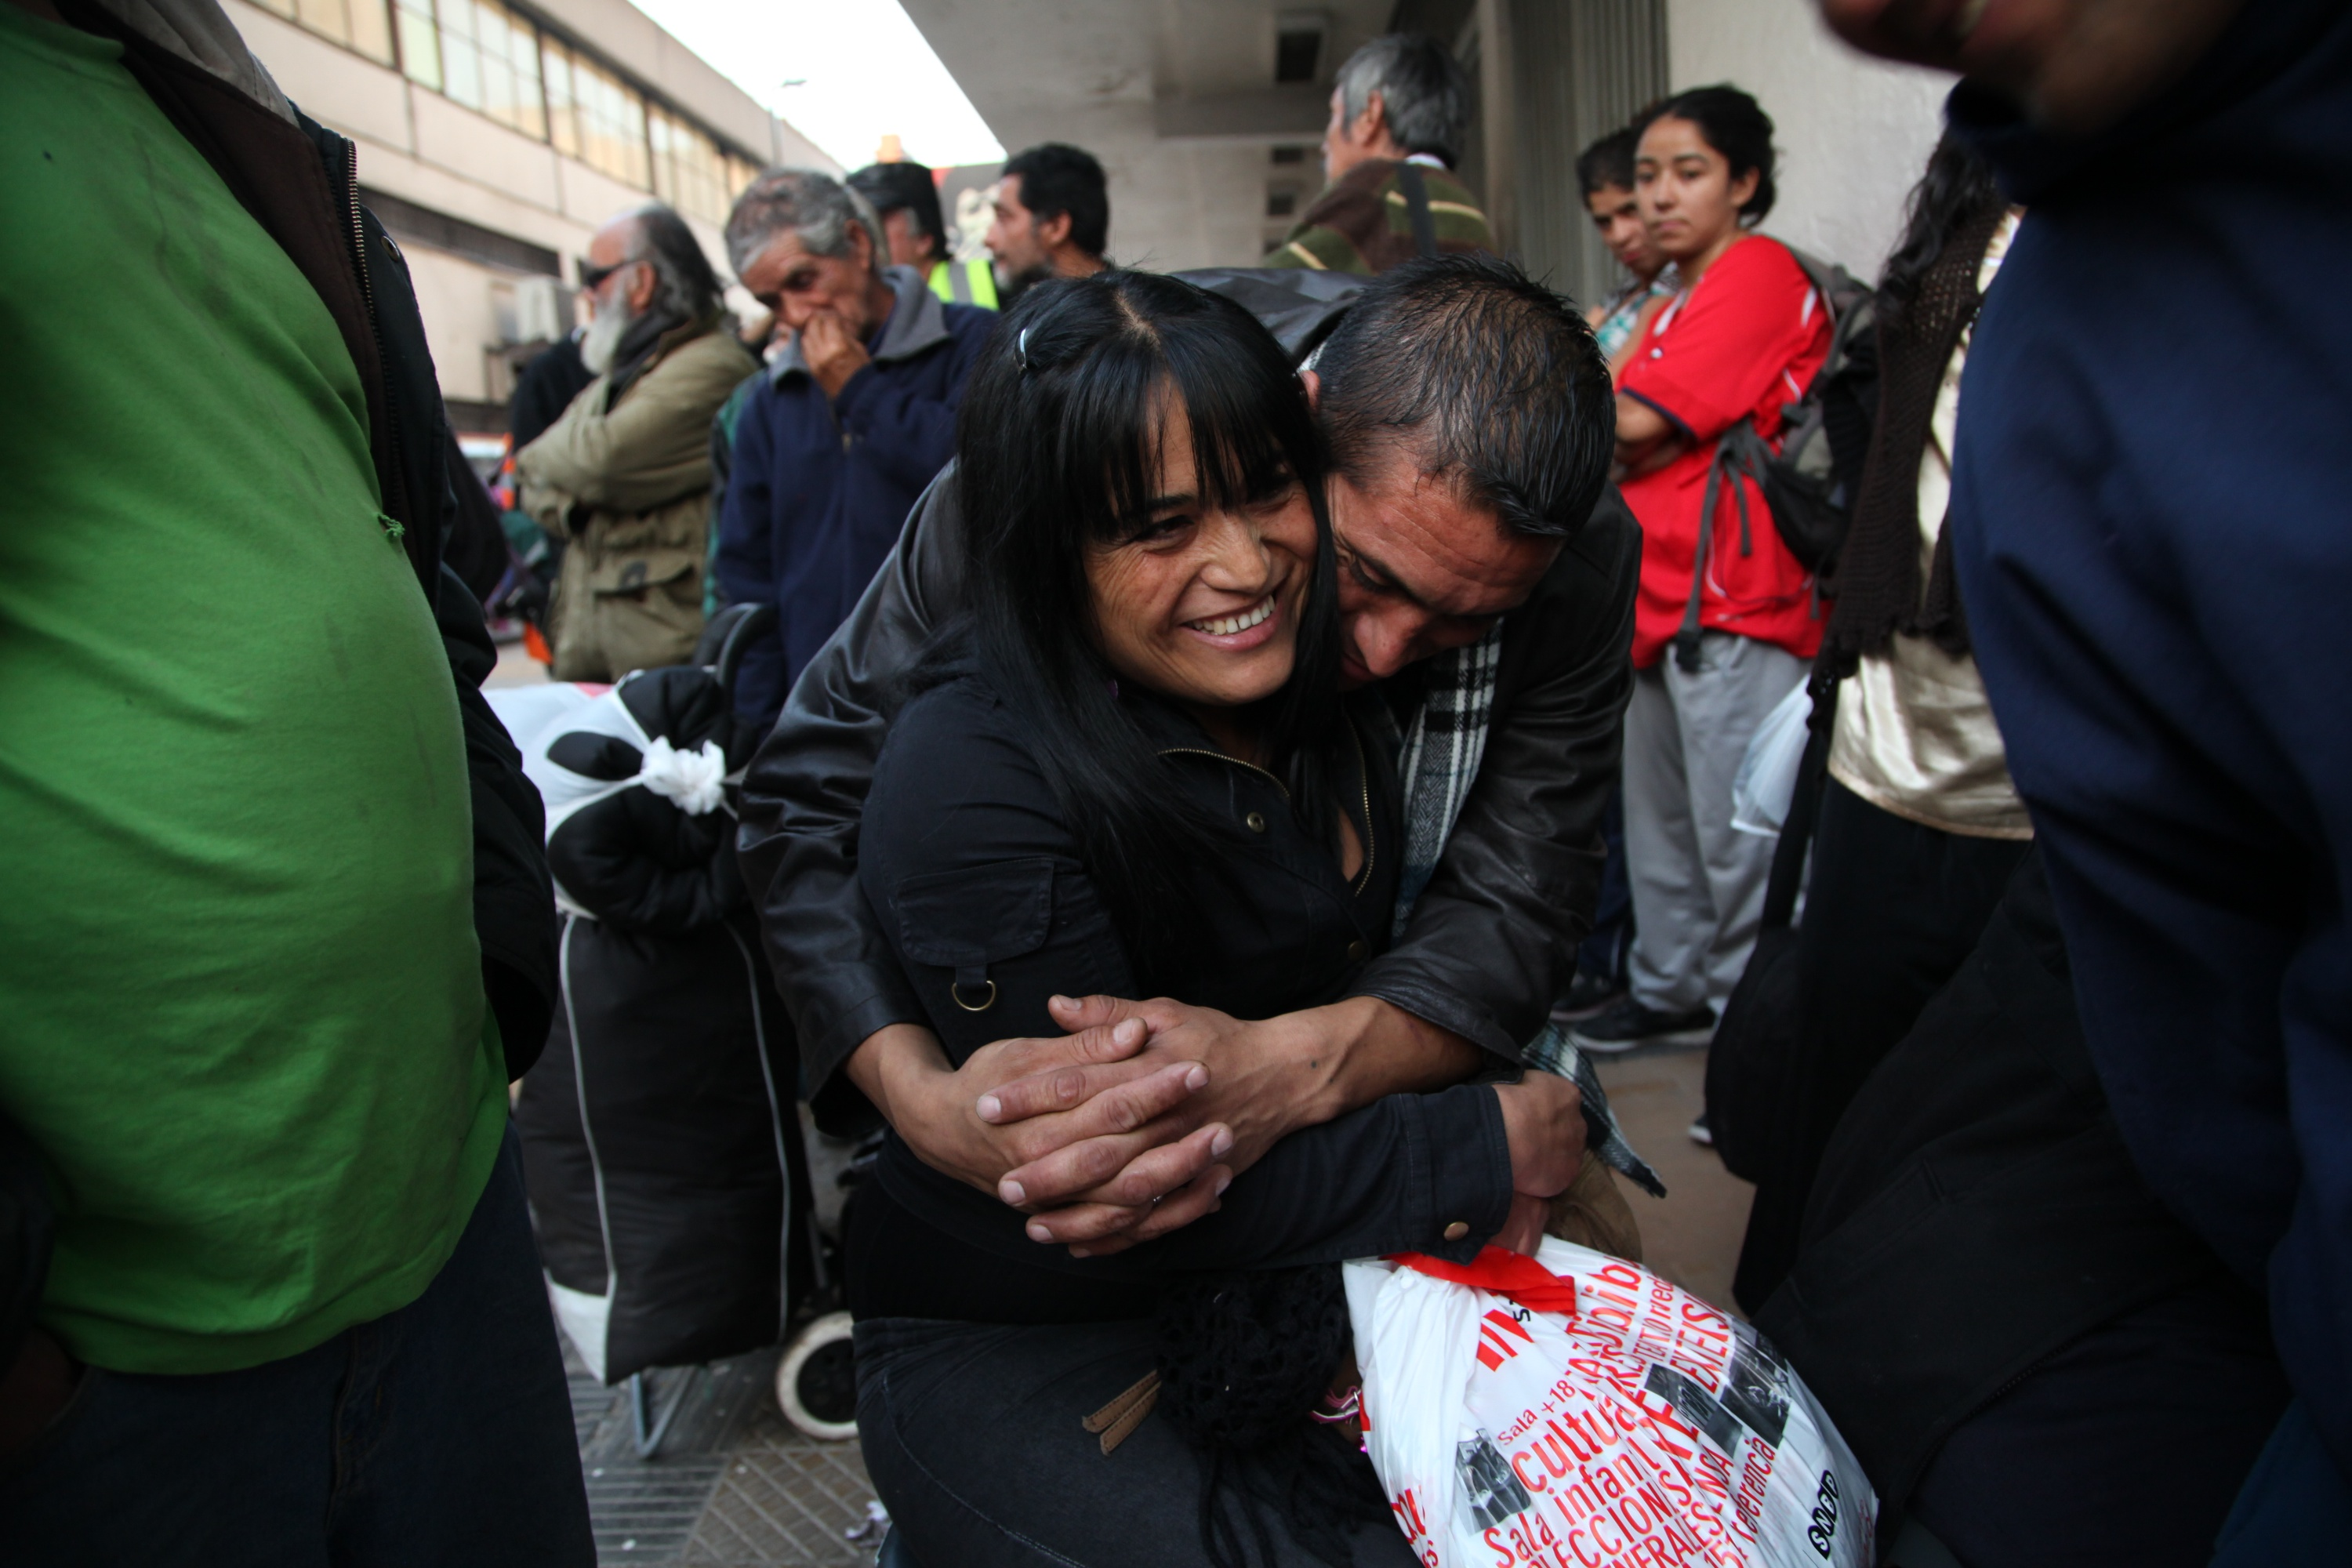 Jonathan Fuentes hugs his girlfriend Vivian Alvarez as they wait for the shelter to open for the evening at the indoor stadium Estadio Victor Jara